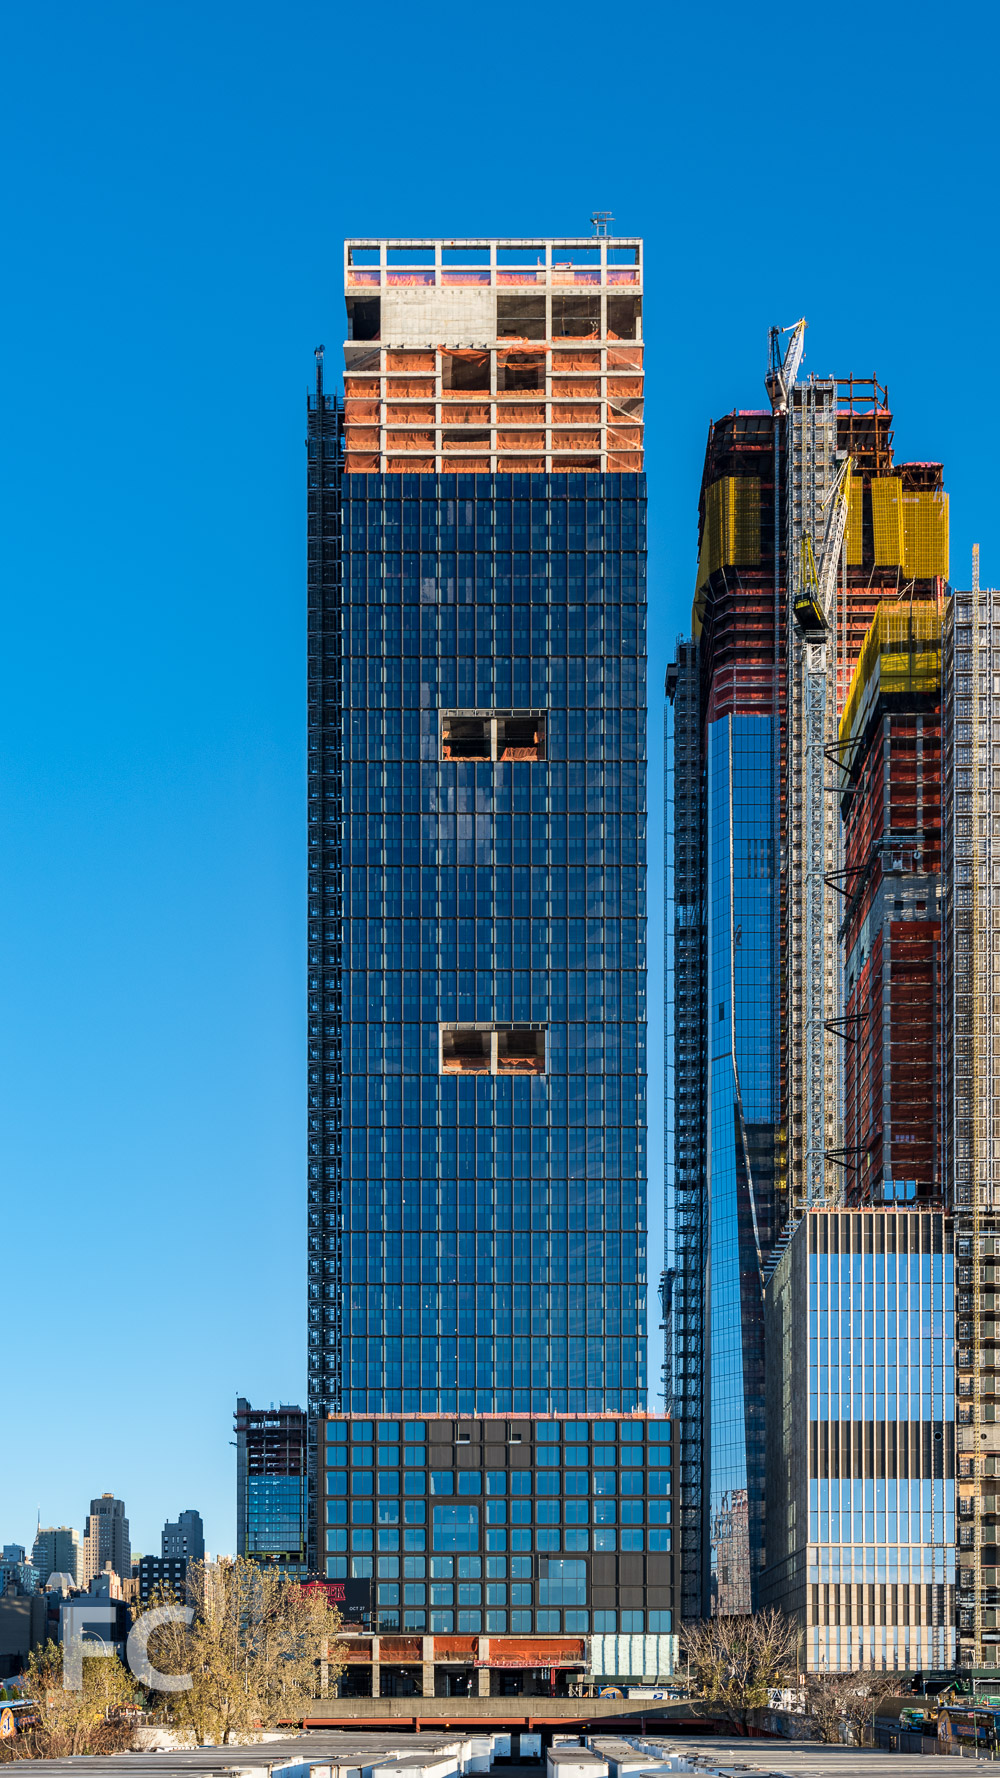 West facade of 55 Hudson Yards.